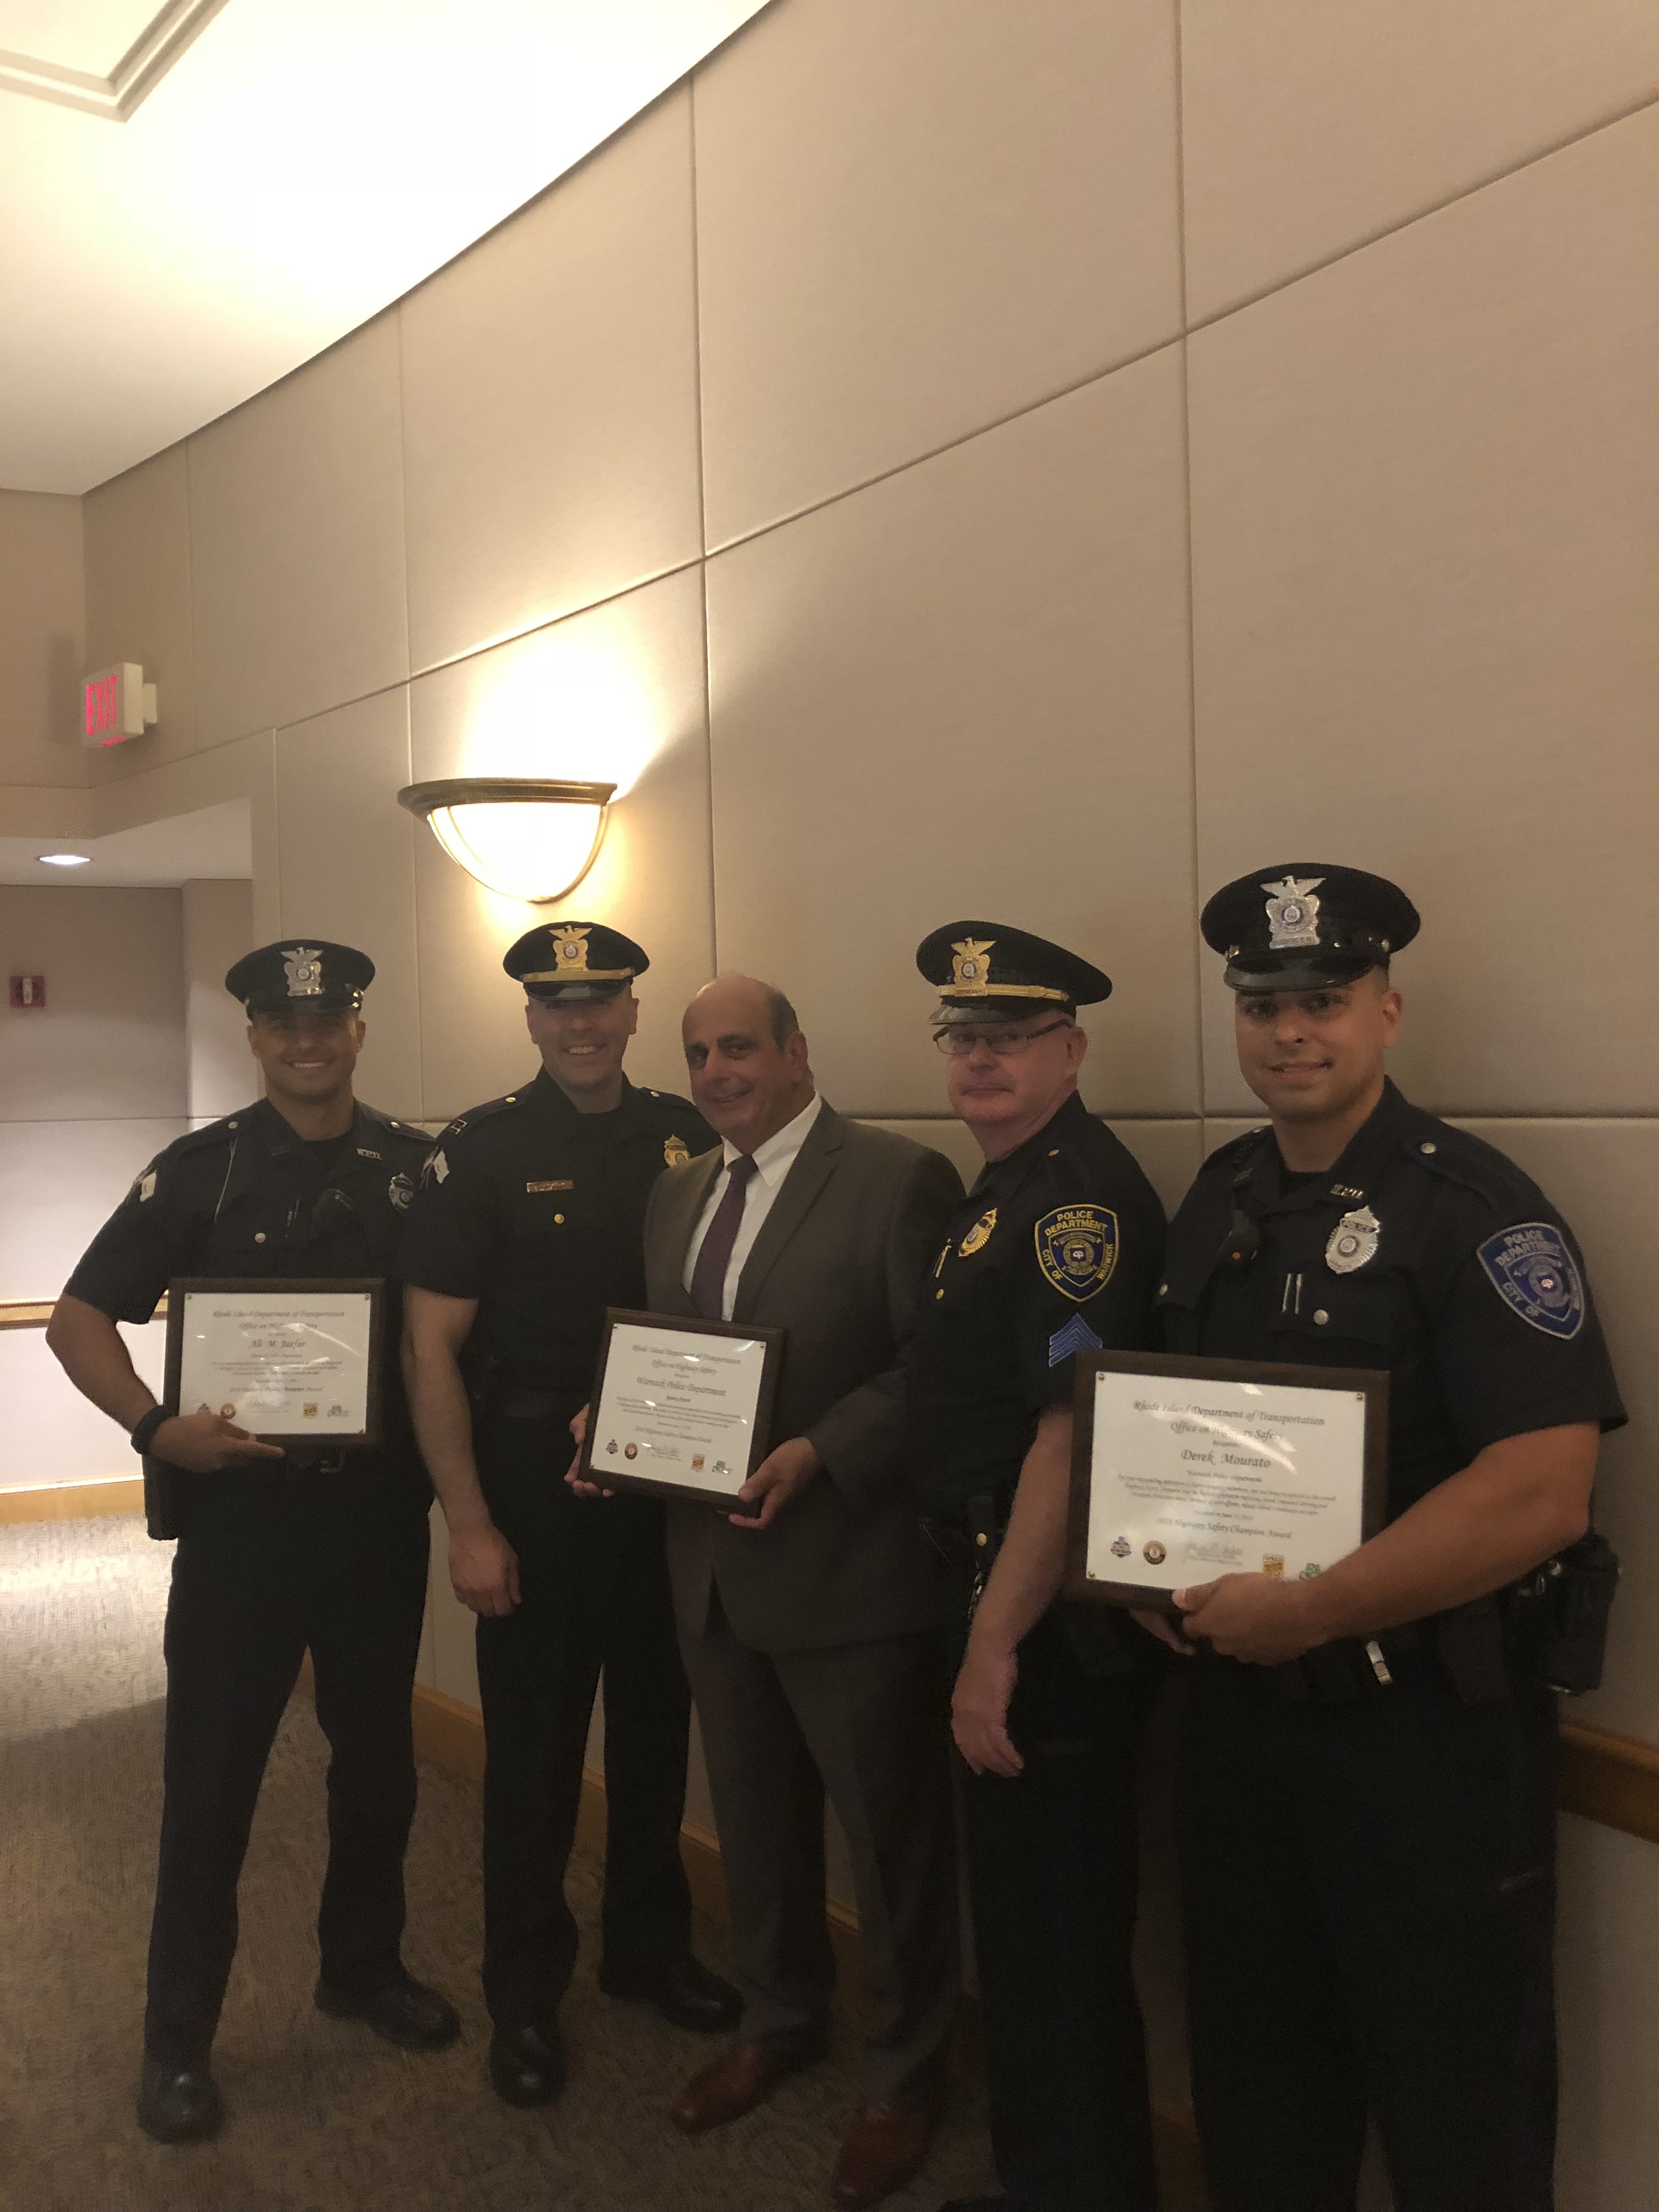 Warwick Police Department, and officers are honored with